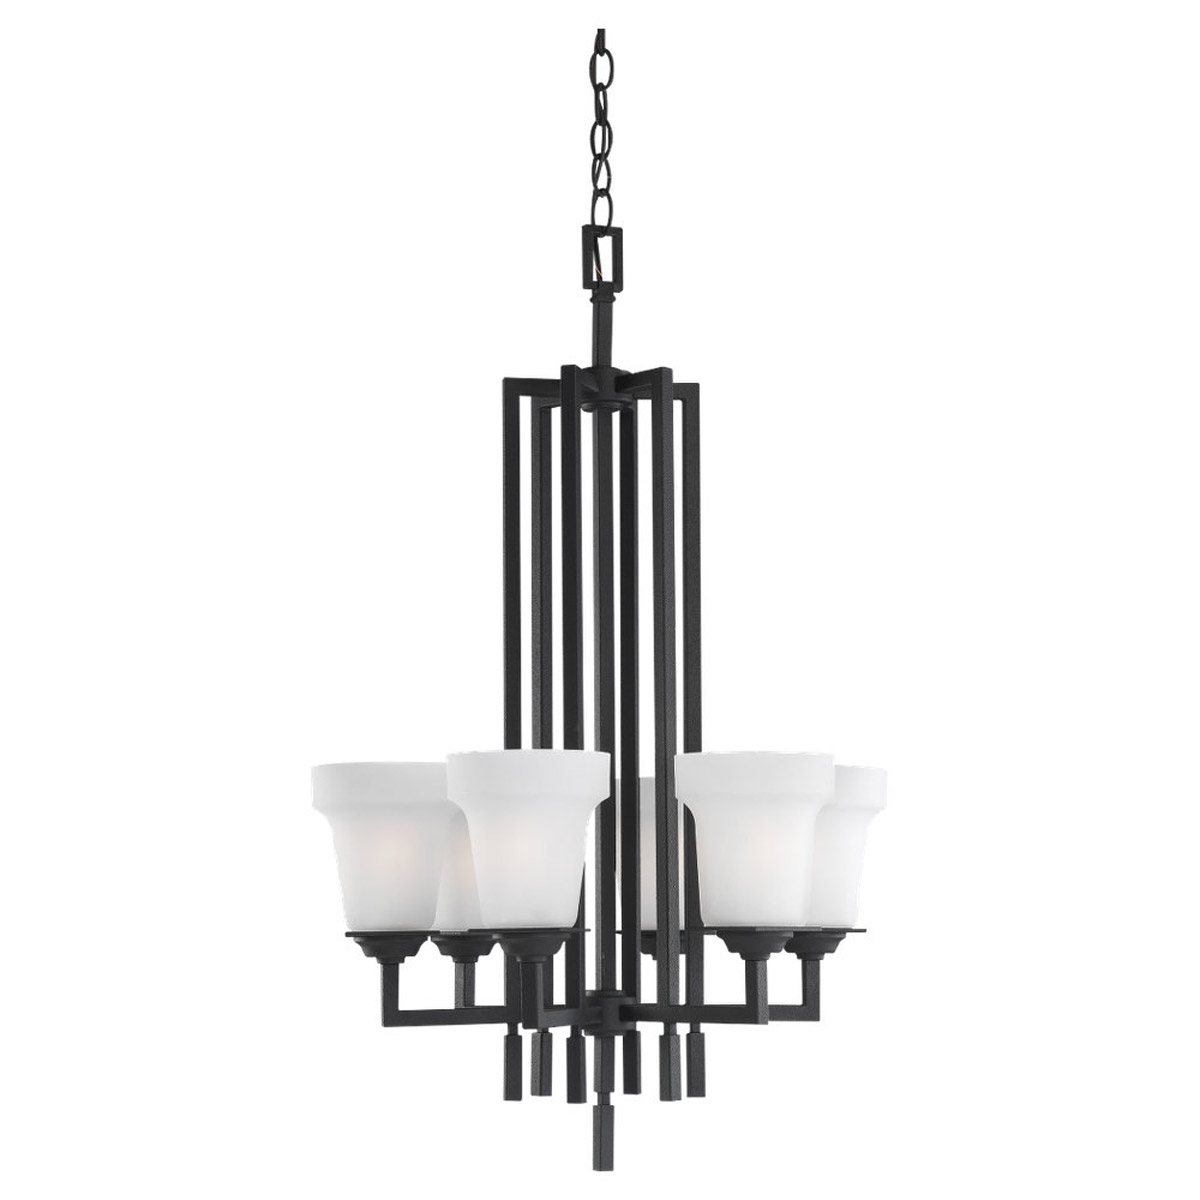 Sea Gull Lighting Cardwell 6 Light Chandelier in Blacksmith 51630-839 photo